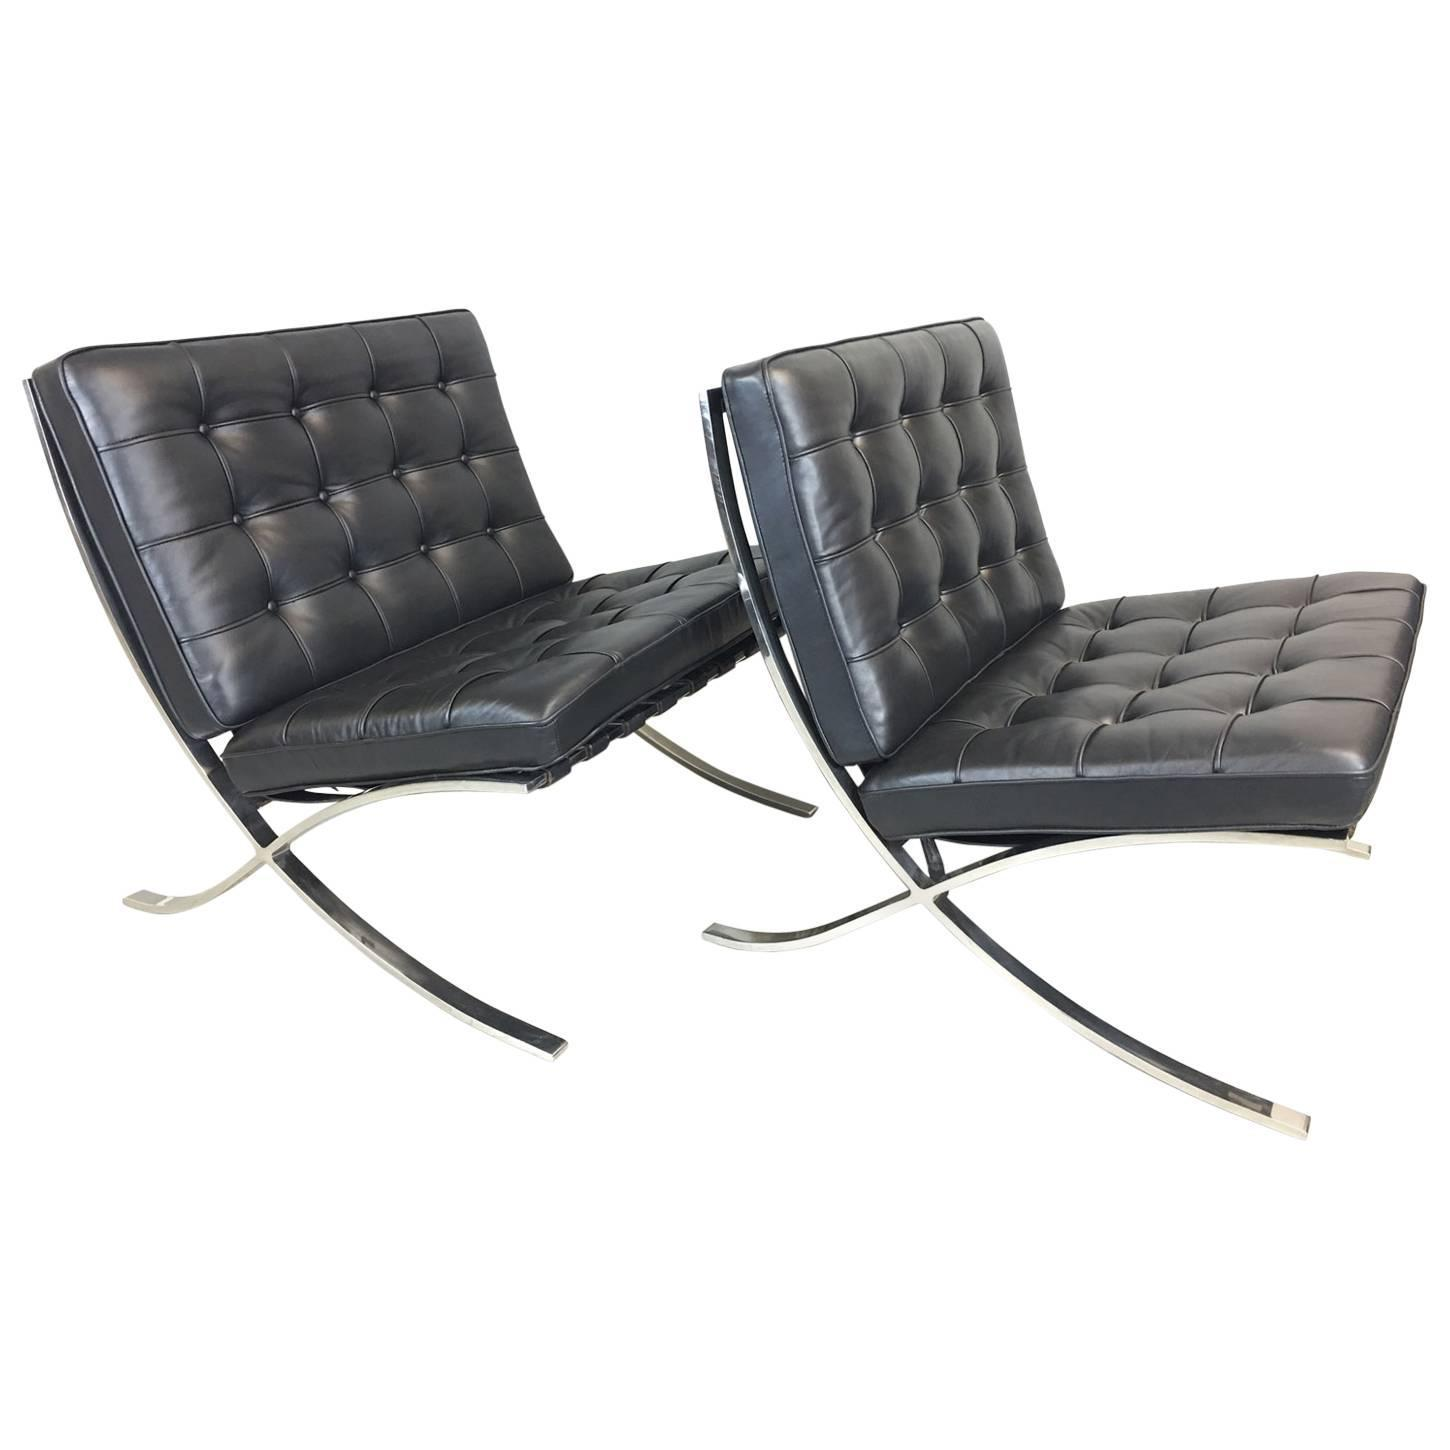 Barcelona Lounge Chair Barcelona Lounge Chair By Mies Van Der Rohe For Sale At